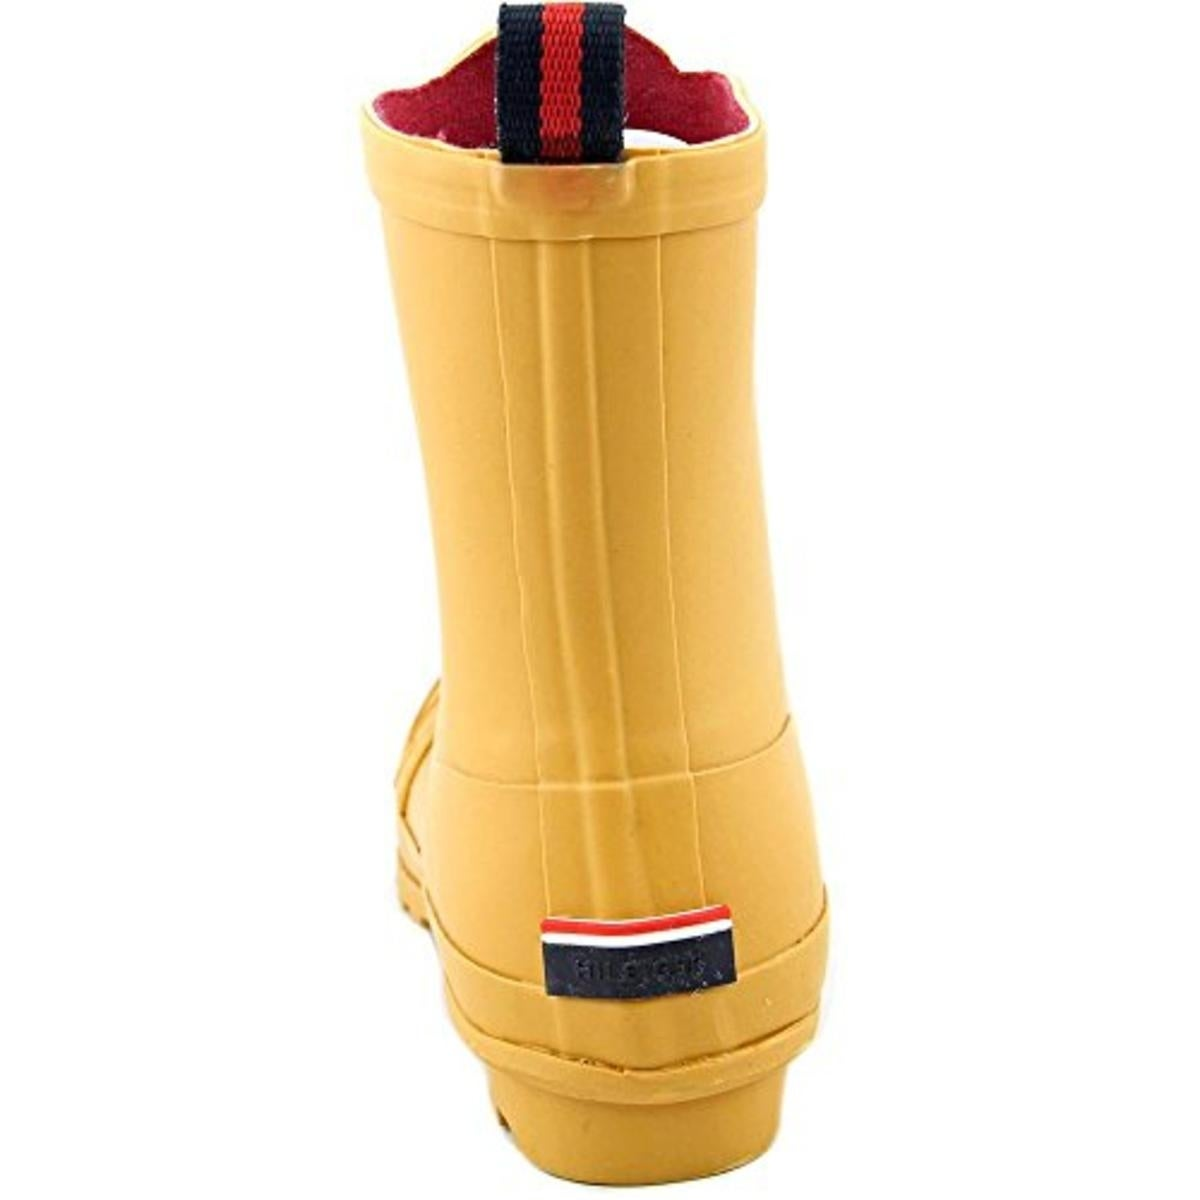 f5c63c9427b5 Shop Tommy Hilfiger Womens Ryann Rain Boots Rubber Front Zip - Free  Shipping Today - Overstock - 16806627